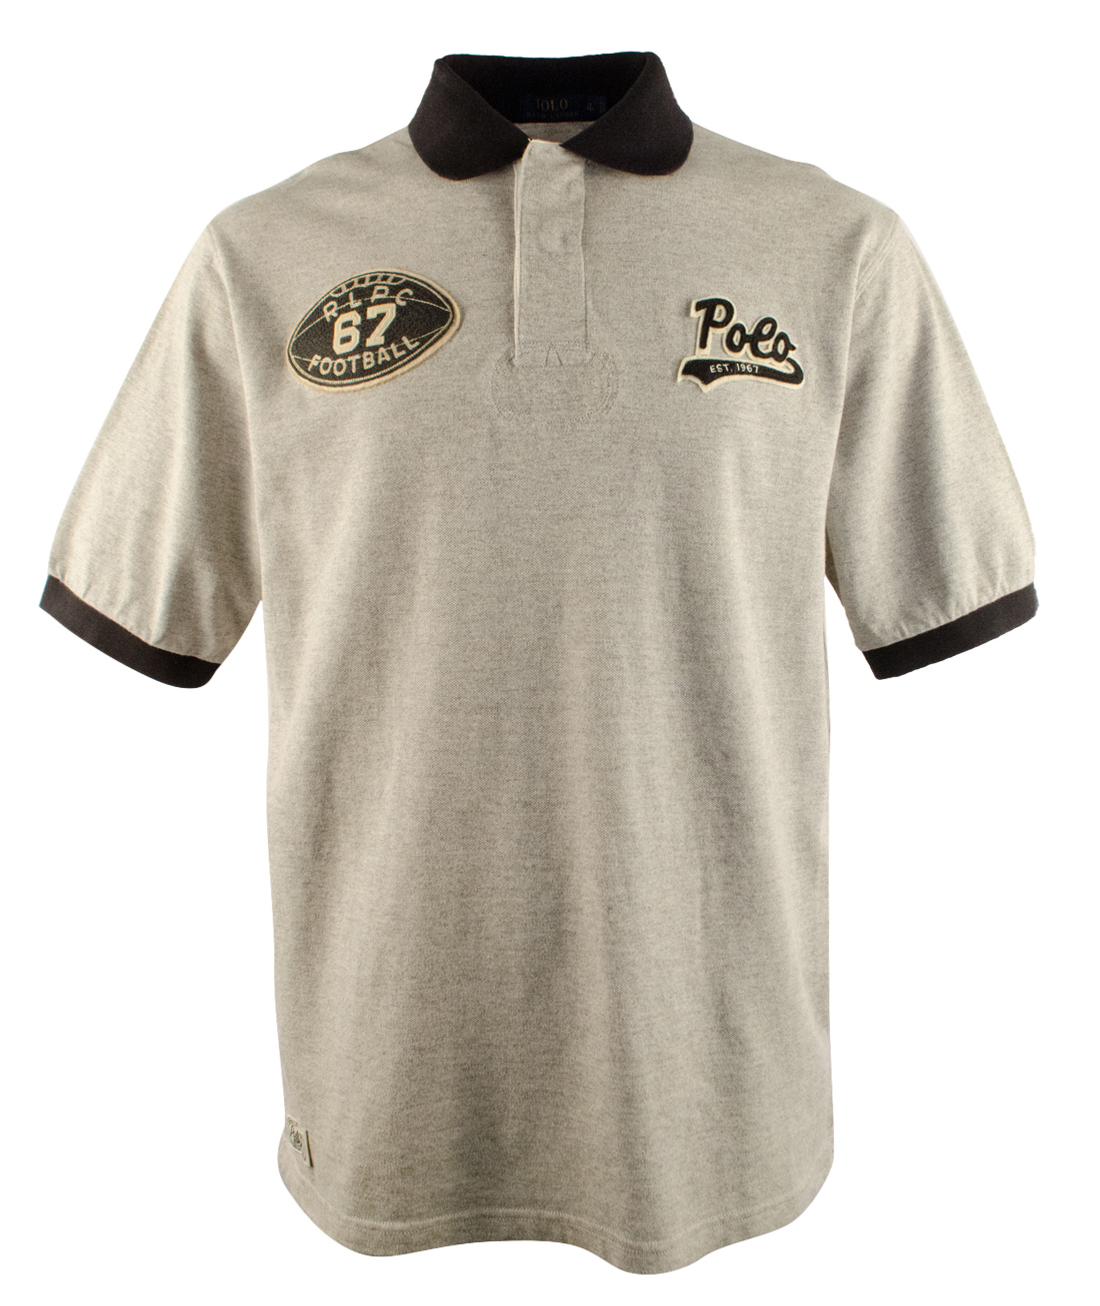 Big Men's Shirts. invalid category id. Big Men's Shirts. Showing 18 of 18 results that match your query. Product - Sport-Tek Men's Big And Tall Performance Polo Shirt. Product Image. Price $ Product Title. Sport-Tek Men's Big And Tall Performance Polo Shirt. Already a ShippingPass member?